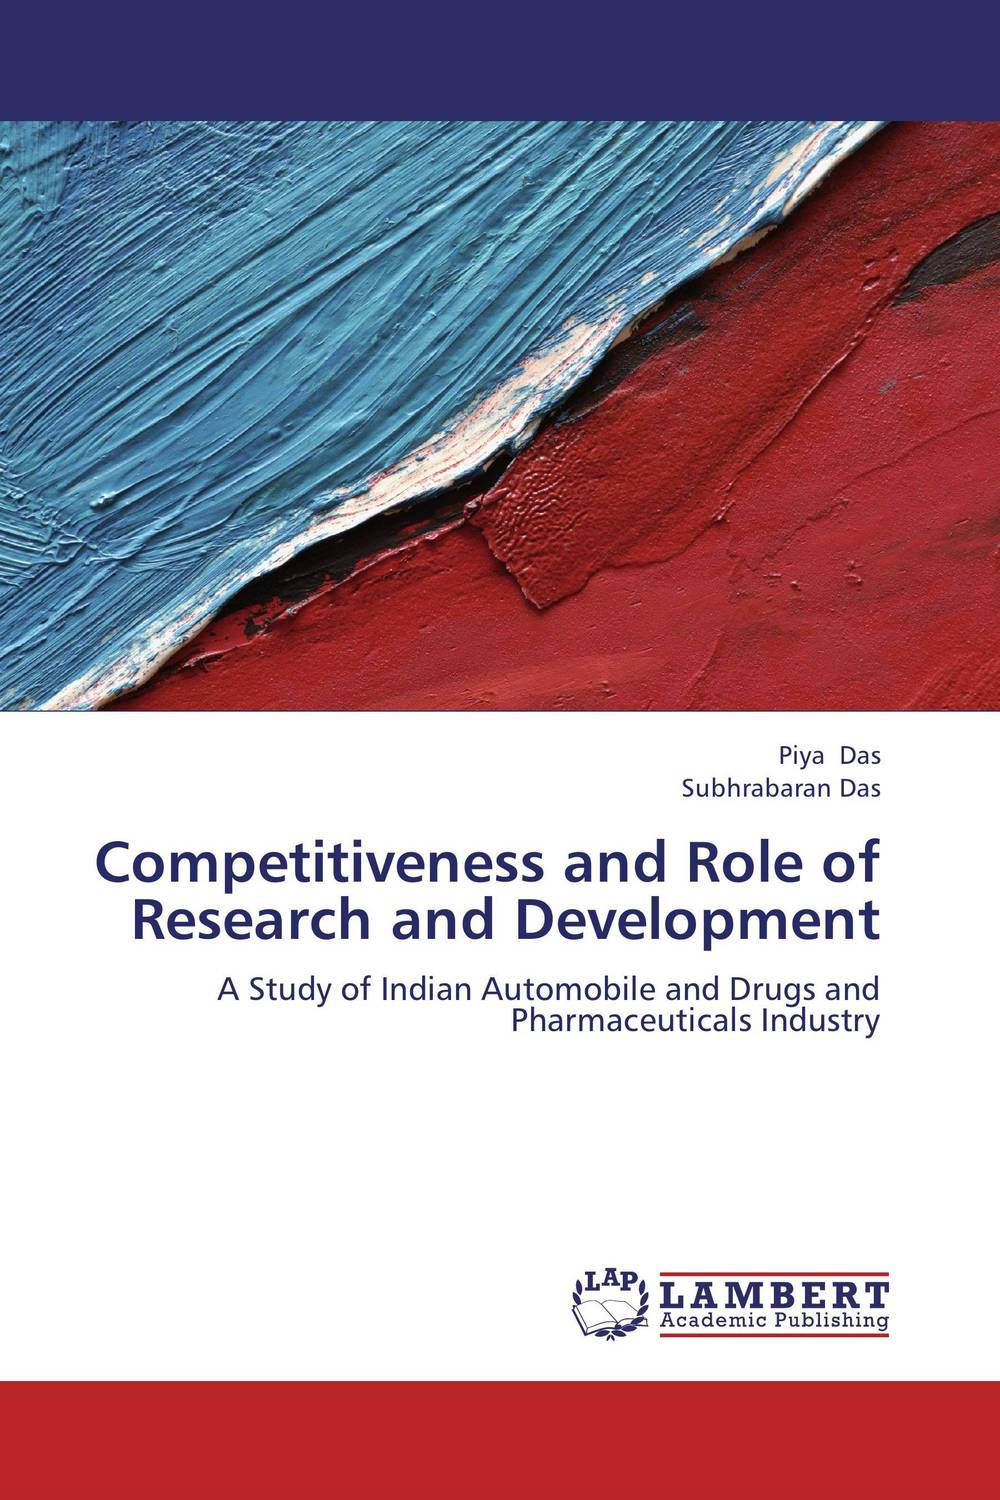 Competitiveness and Role of Research and Development the role of evaluation as a mechanism for advancing principal practice